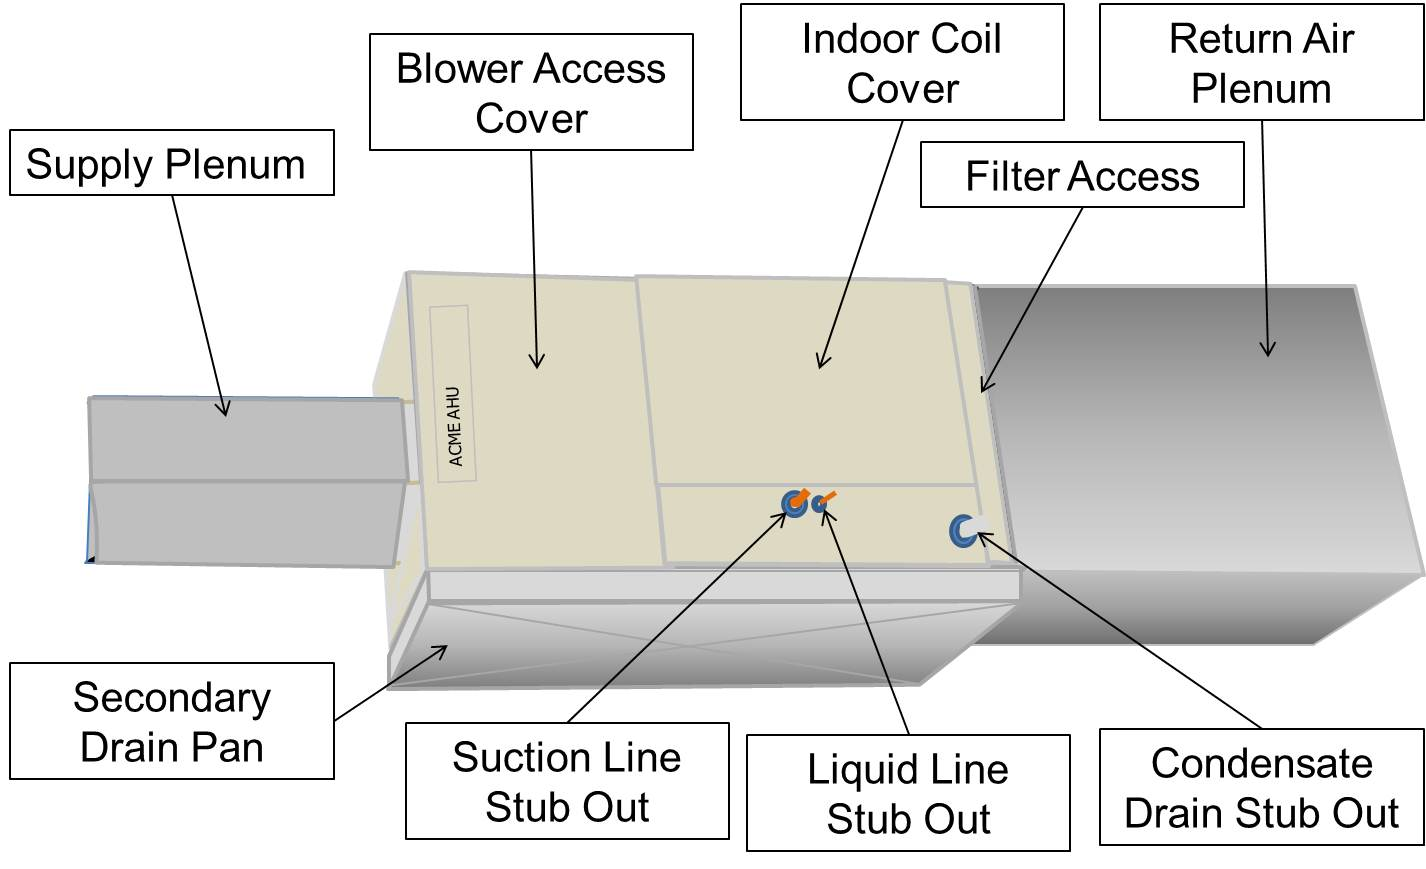 hight resolution of install the filter media box between the return air plenum and the air handler box